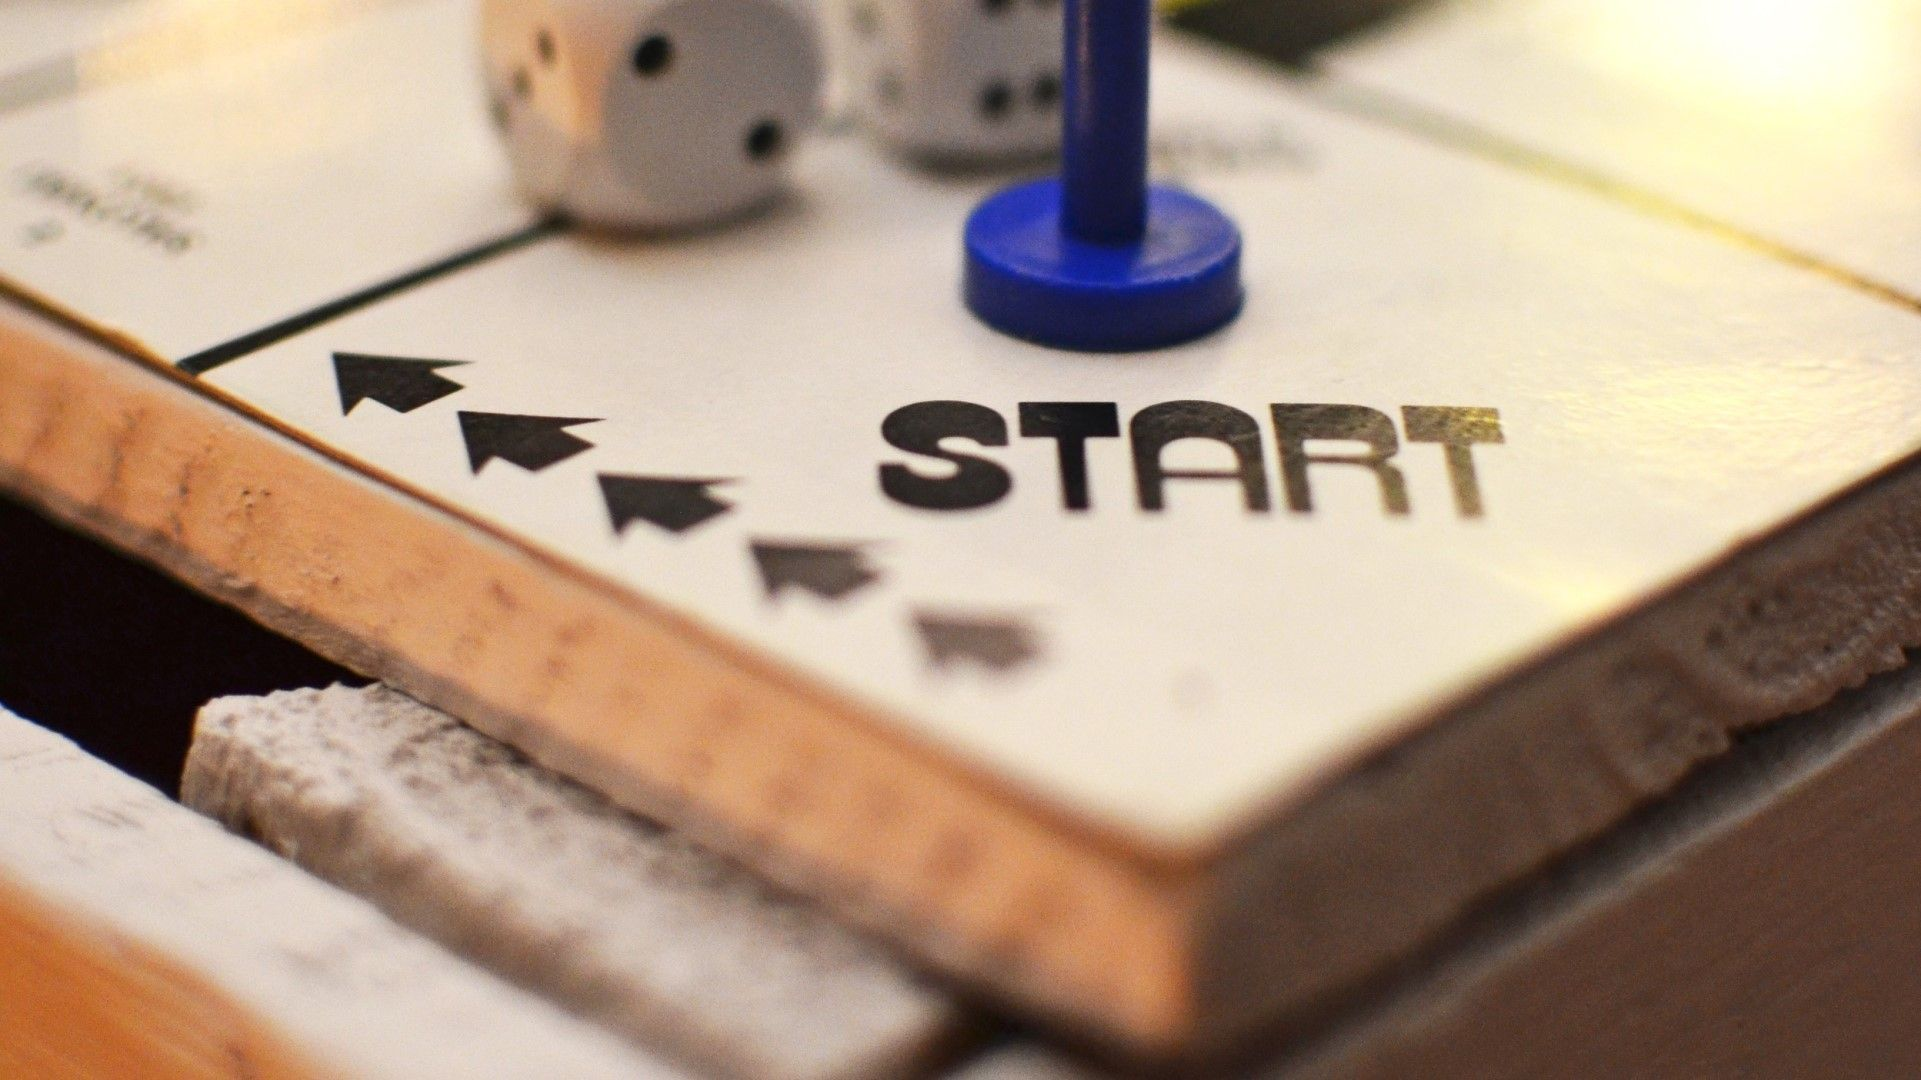 start tile on board game